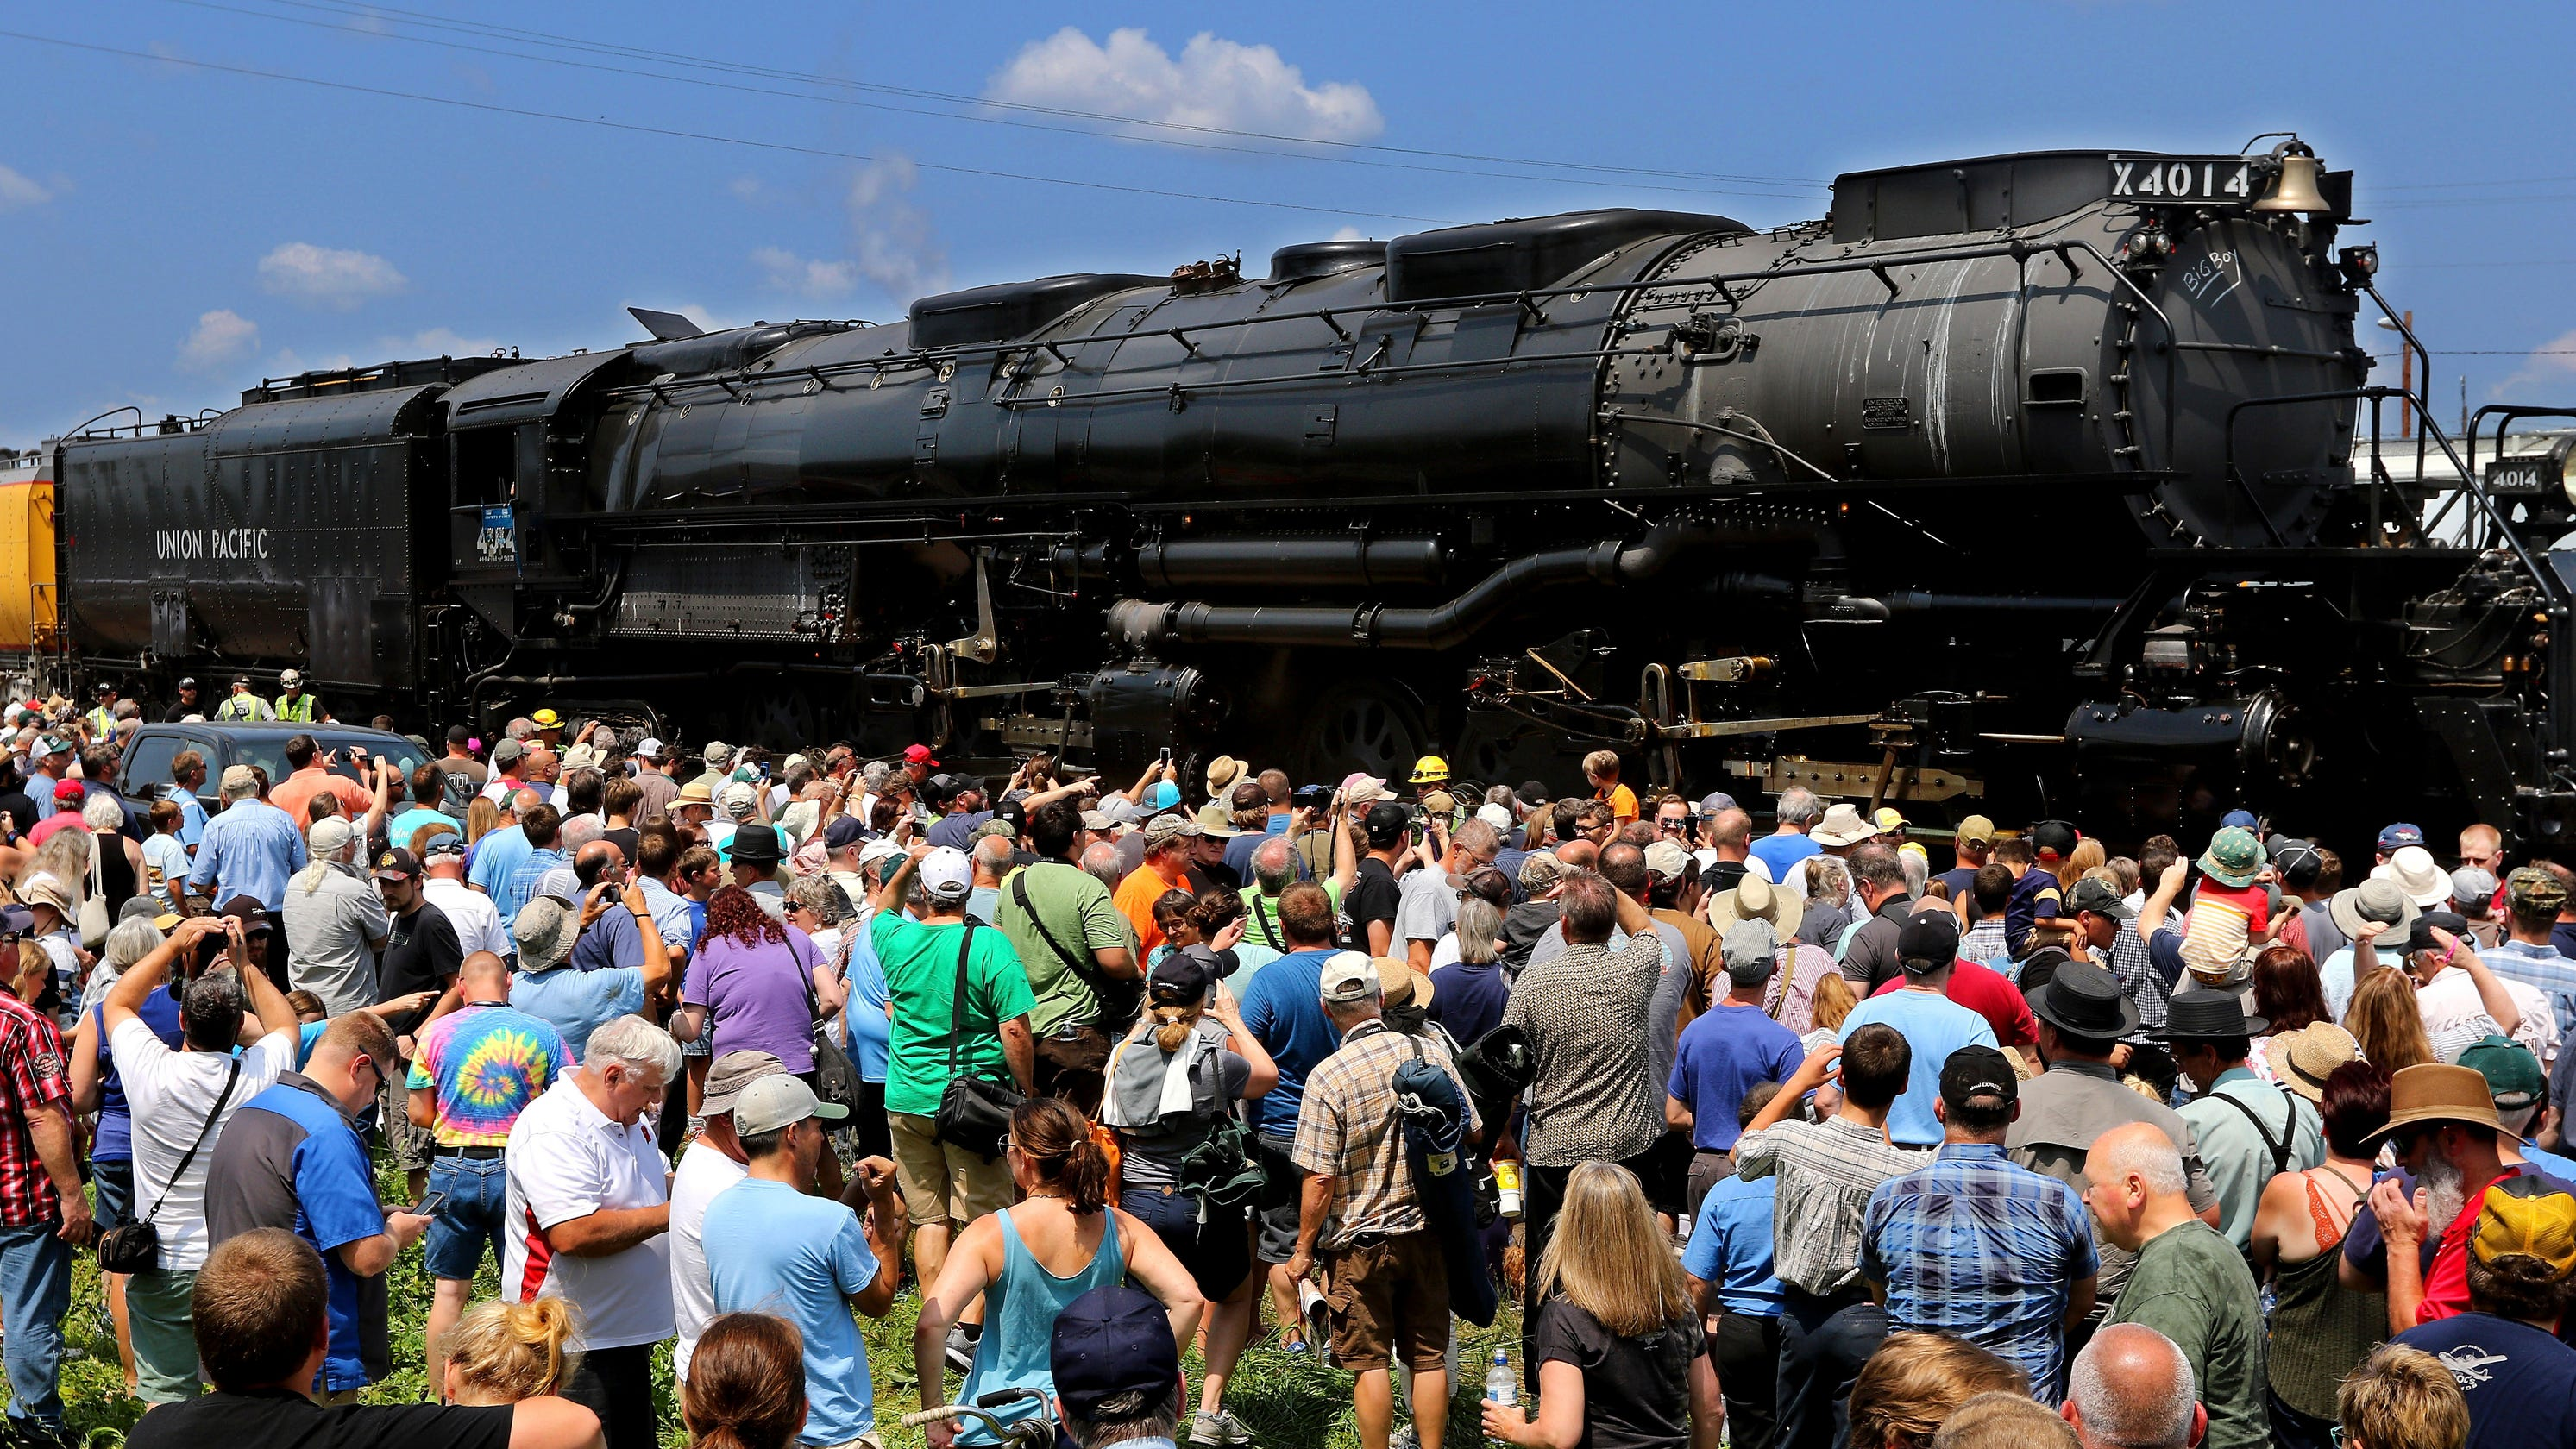 Big Boy No  4014 is rolling through Wisconsin, coming to